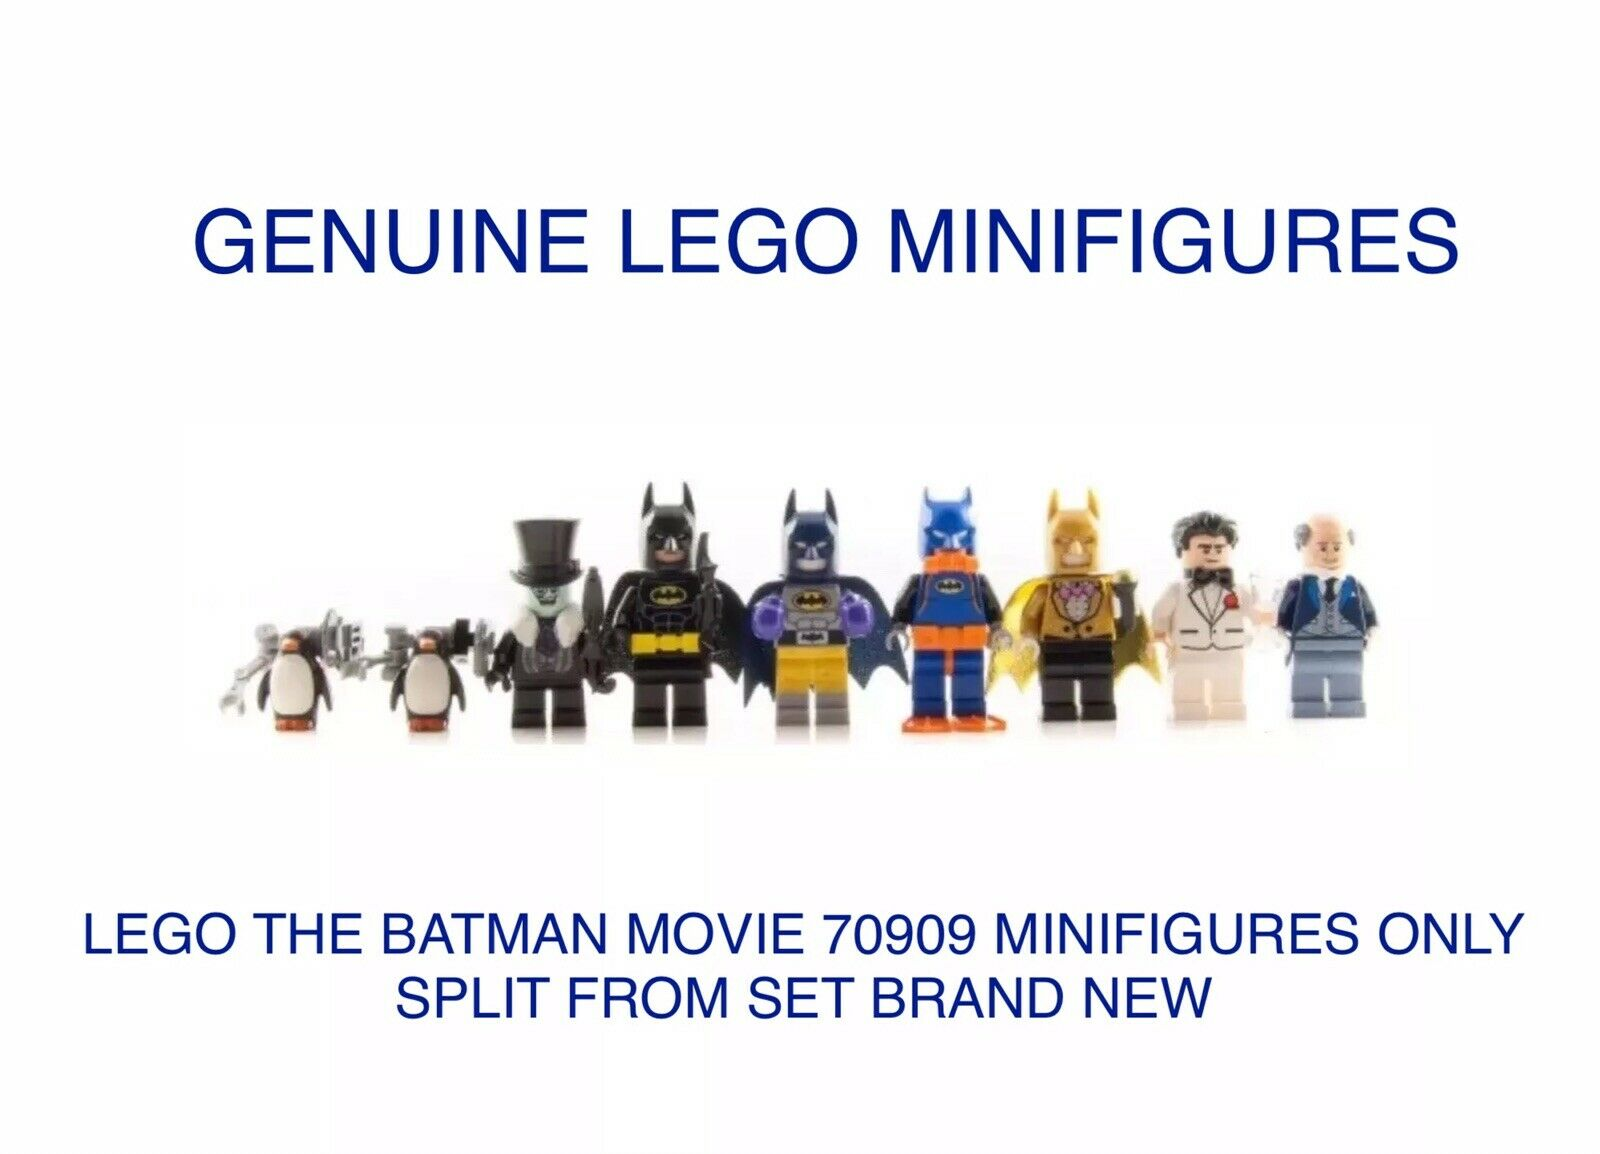 LEGO THE BATMAN MOVIE 70909 MINIFIGURES & PENGUINS ONLY, FROM THE SET. NEW.